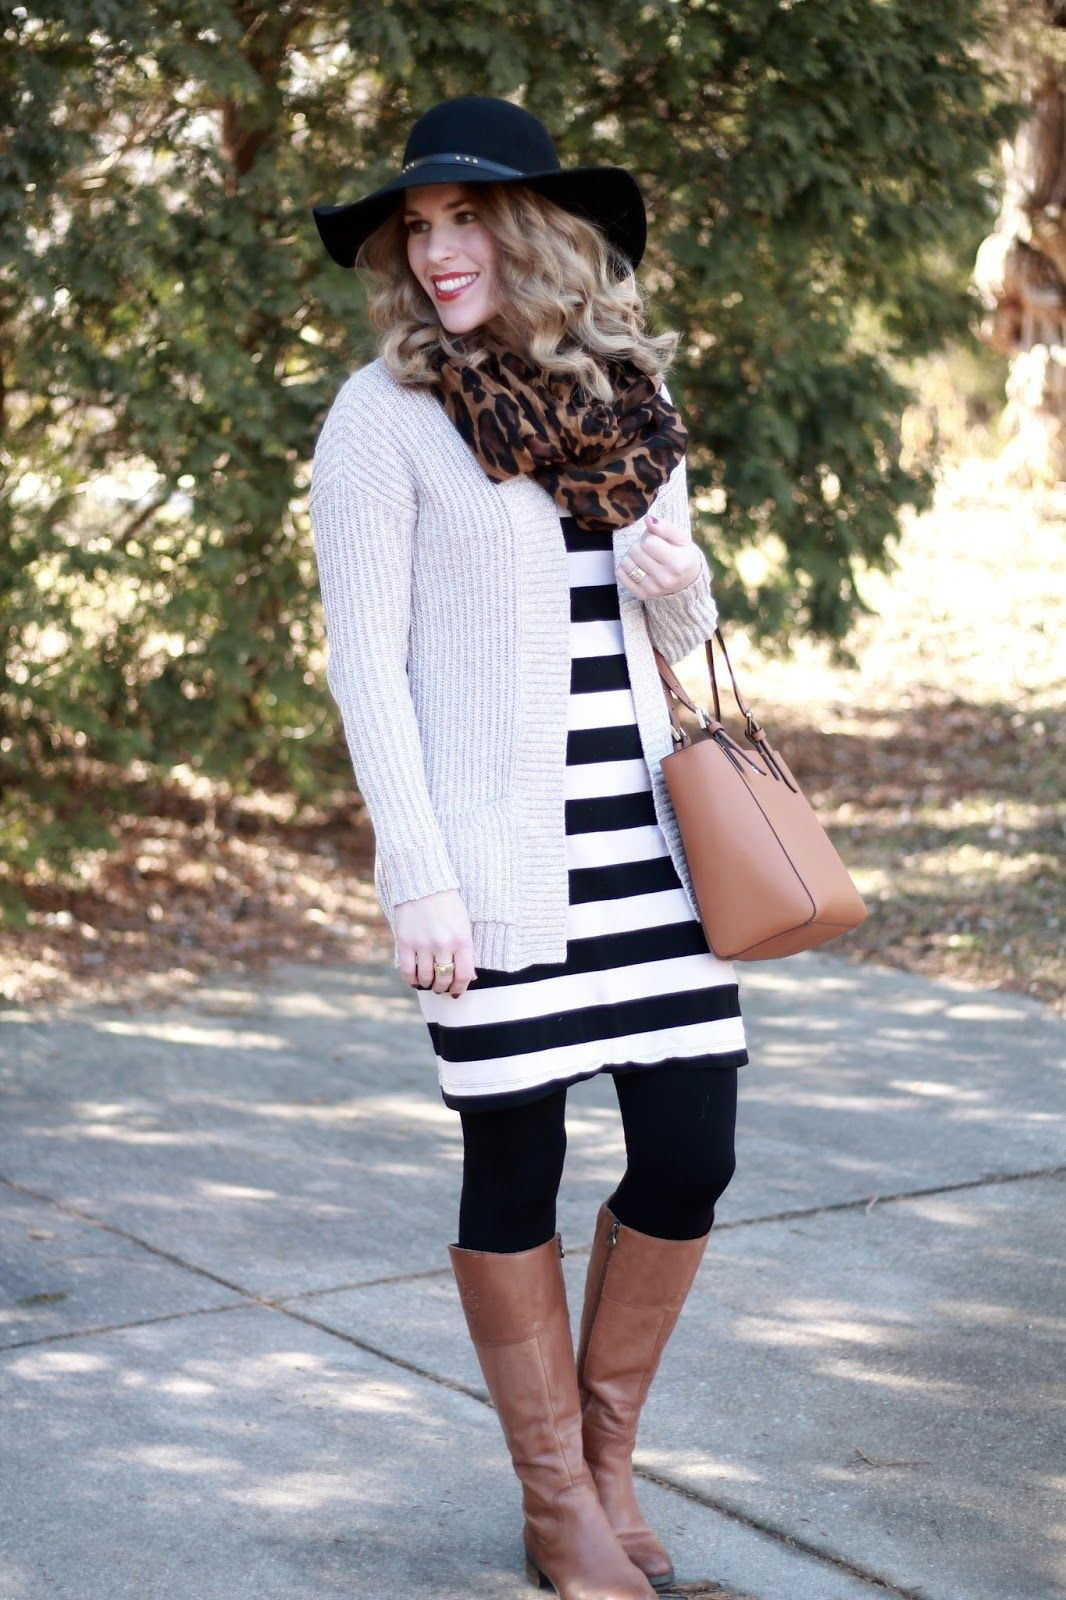 I do deClaire: fashion | Fashion, Outfit inspirations